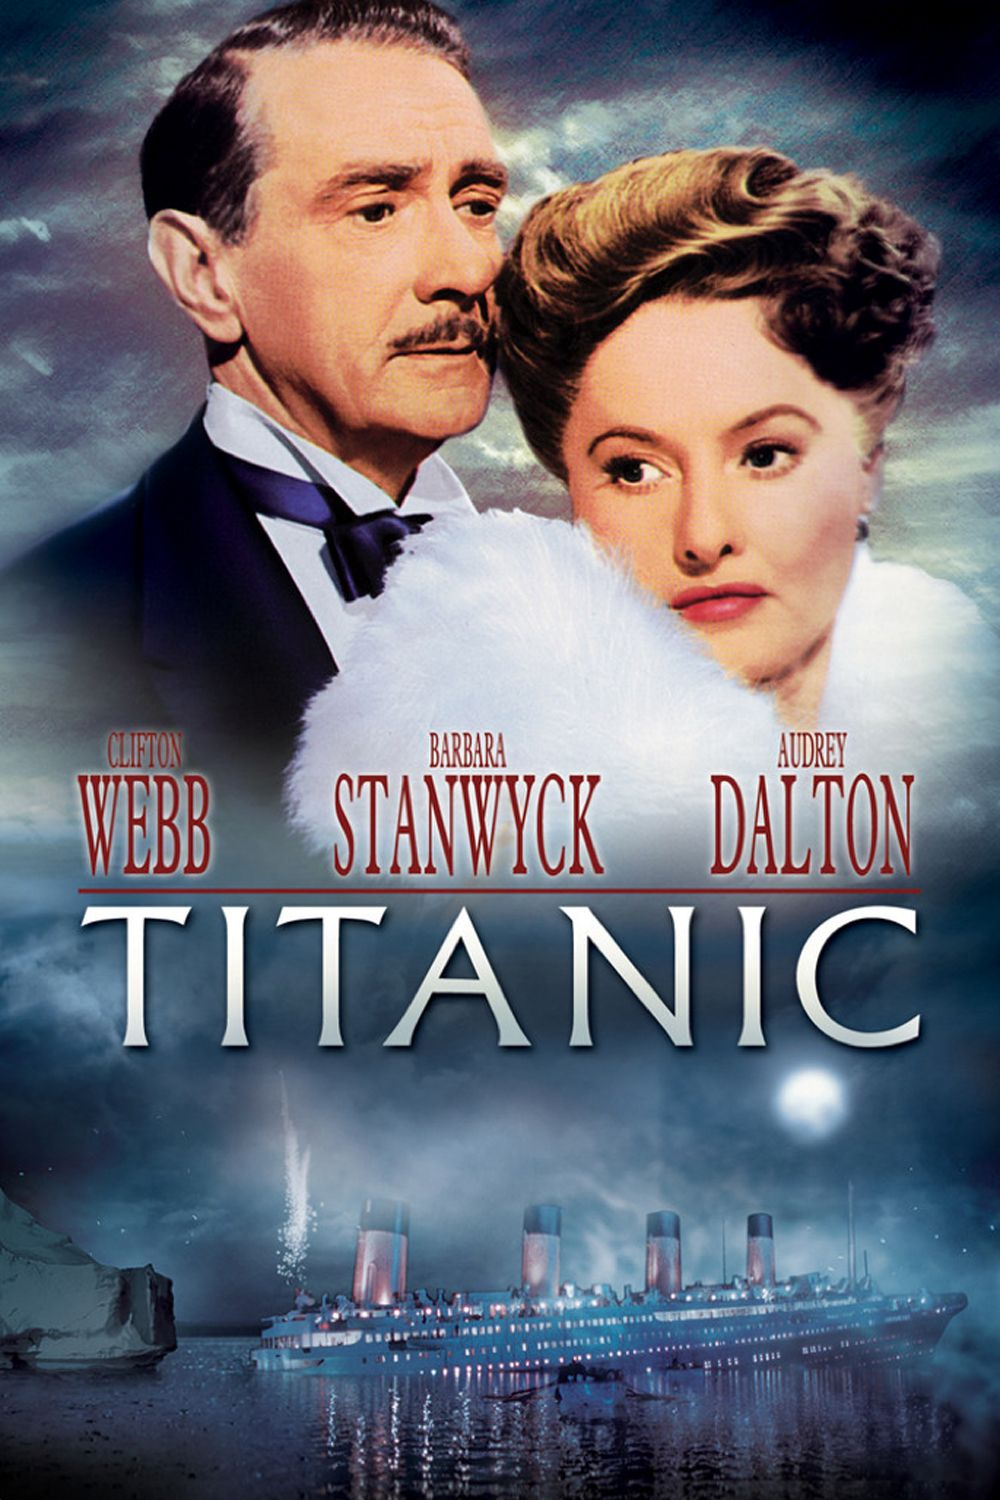 Image result for robert wagner and barbara stanwyck in titanic